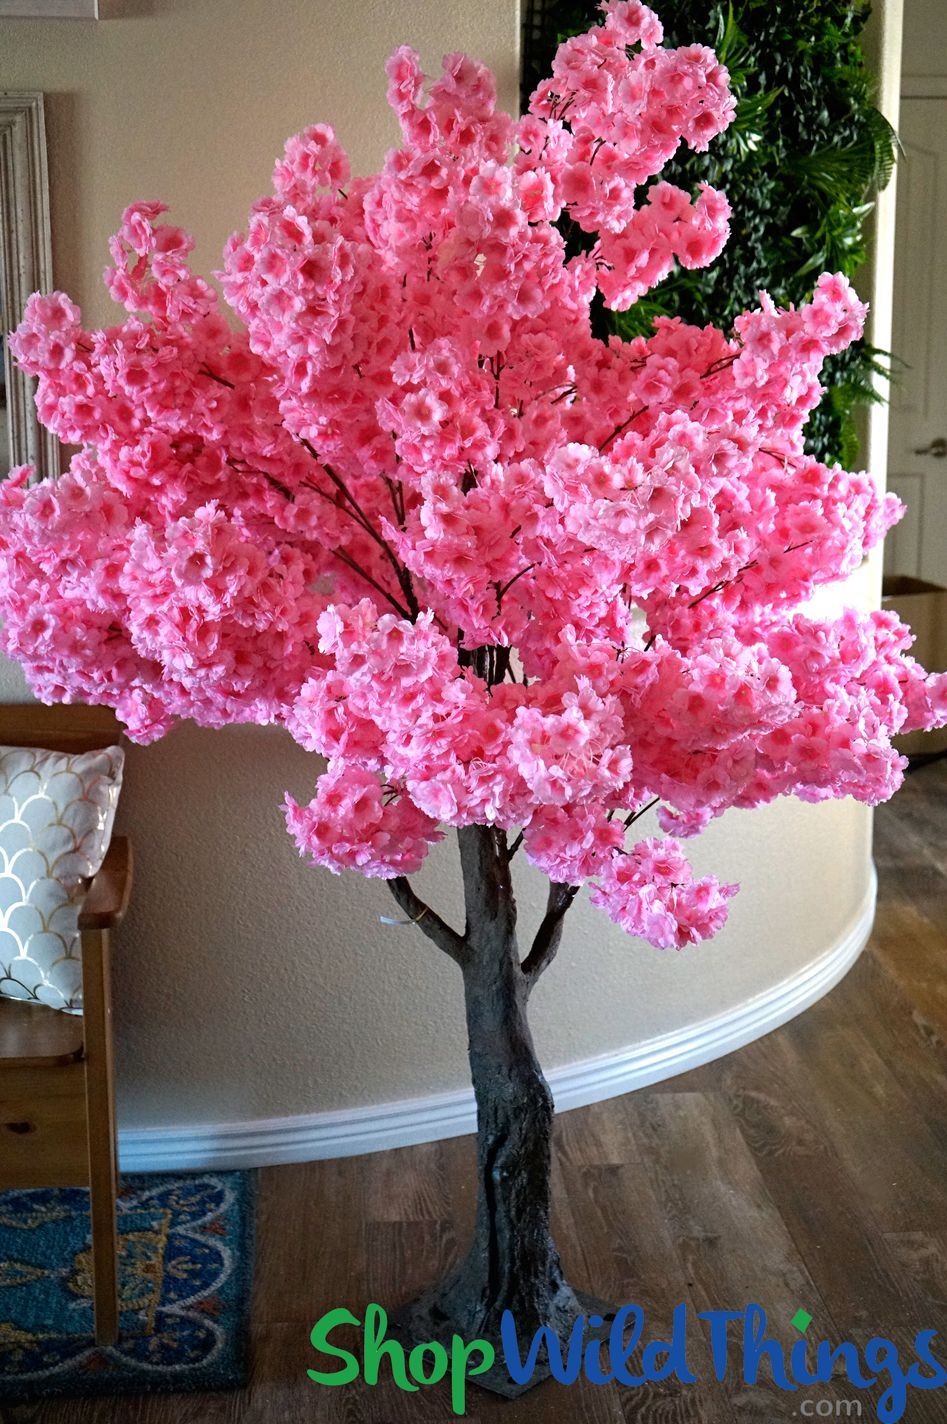 Flowering Artificial Dogwood Tree Extra Full Over 6 Tall Pink